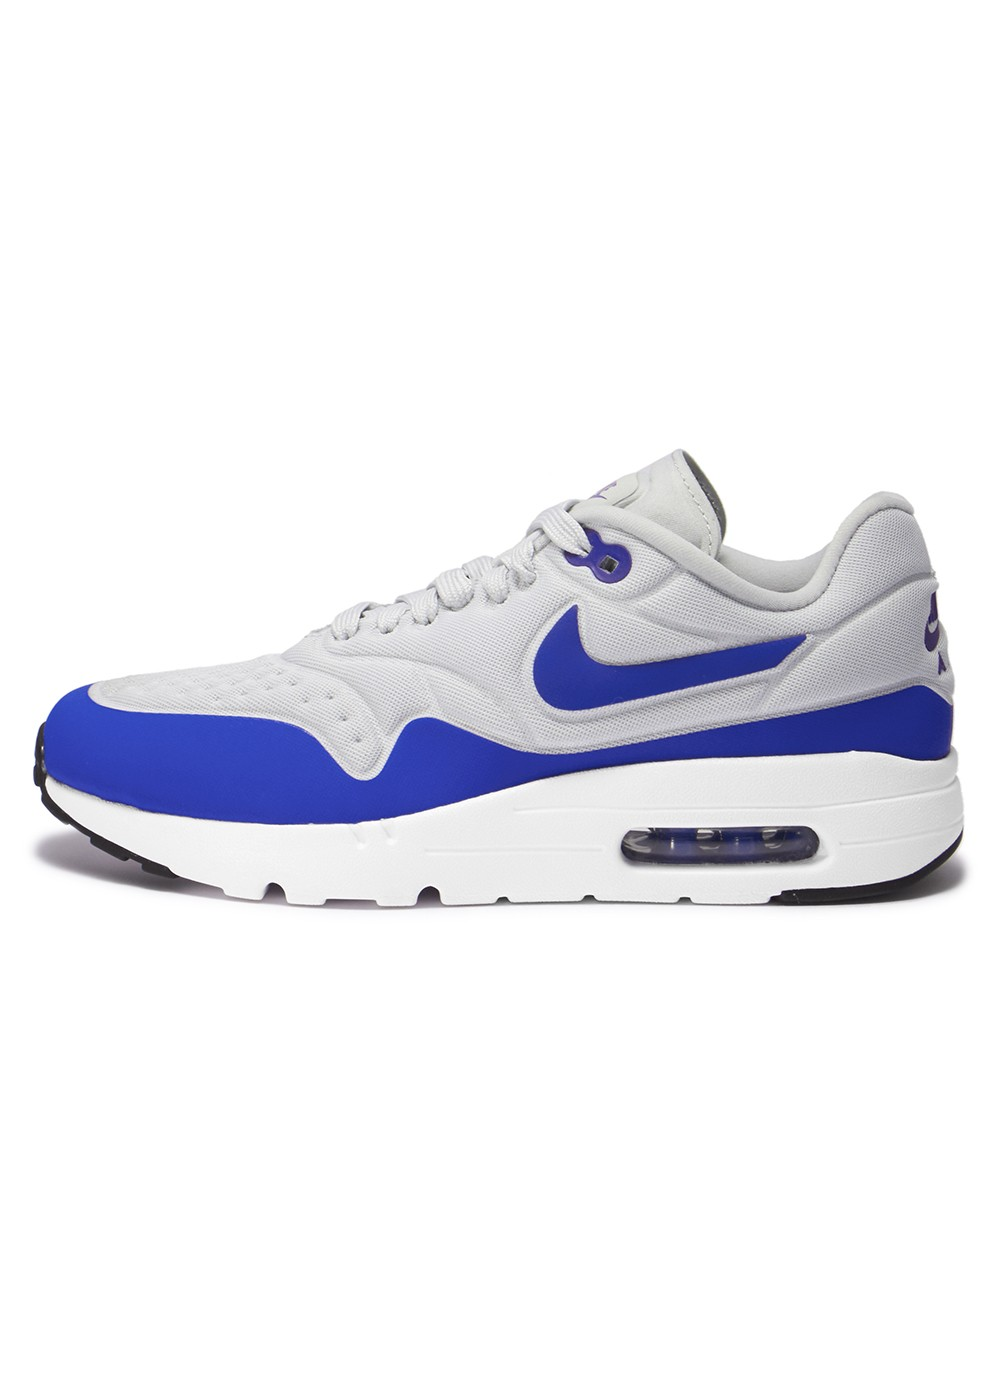 【NIKE】AIR MAX 1 ULTRA SE 845038-004|GREY|スニーカー|Styles